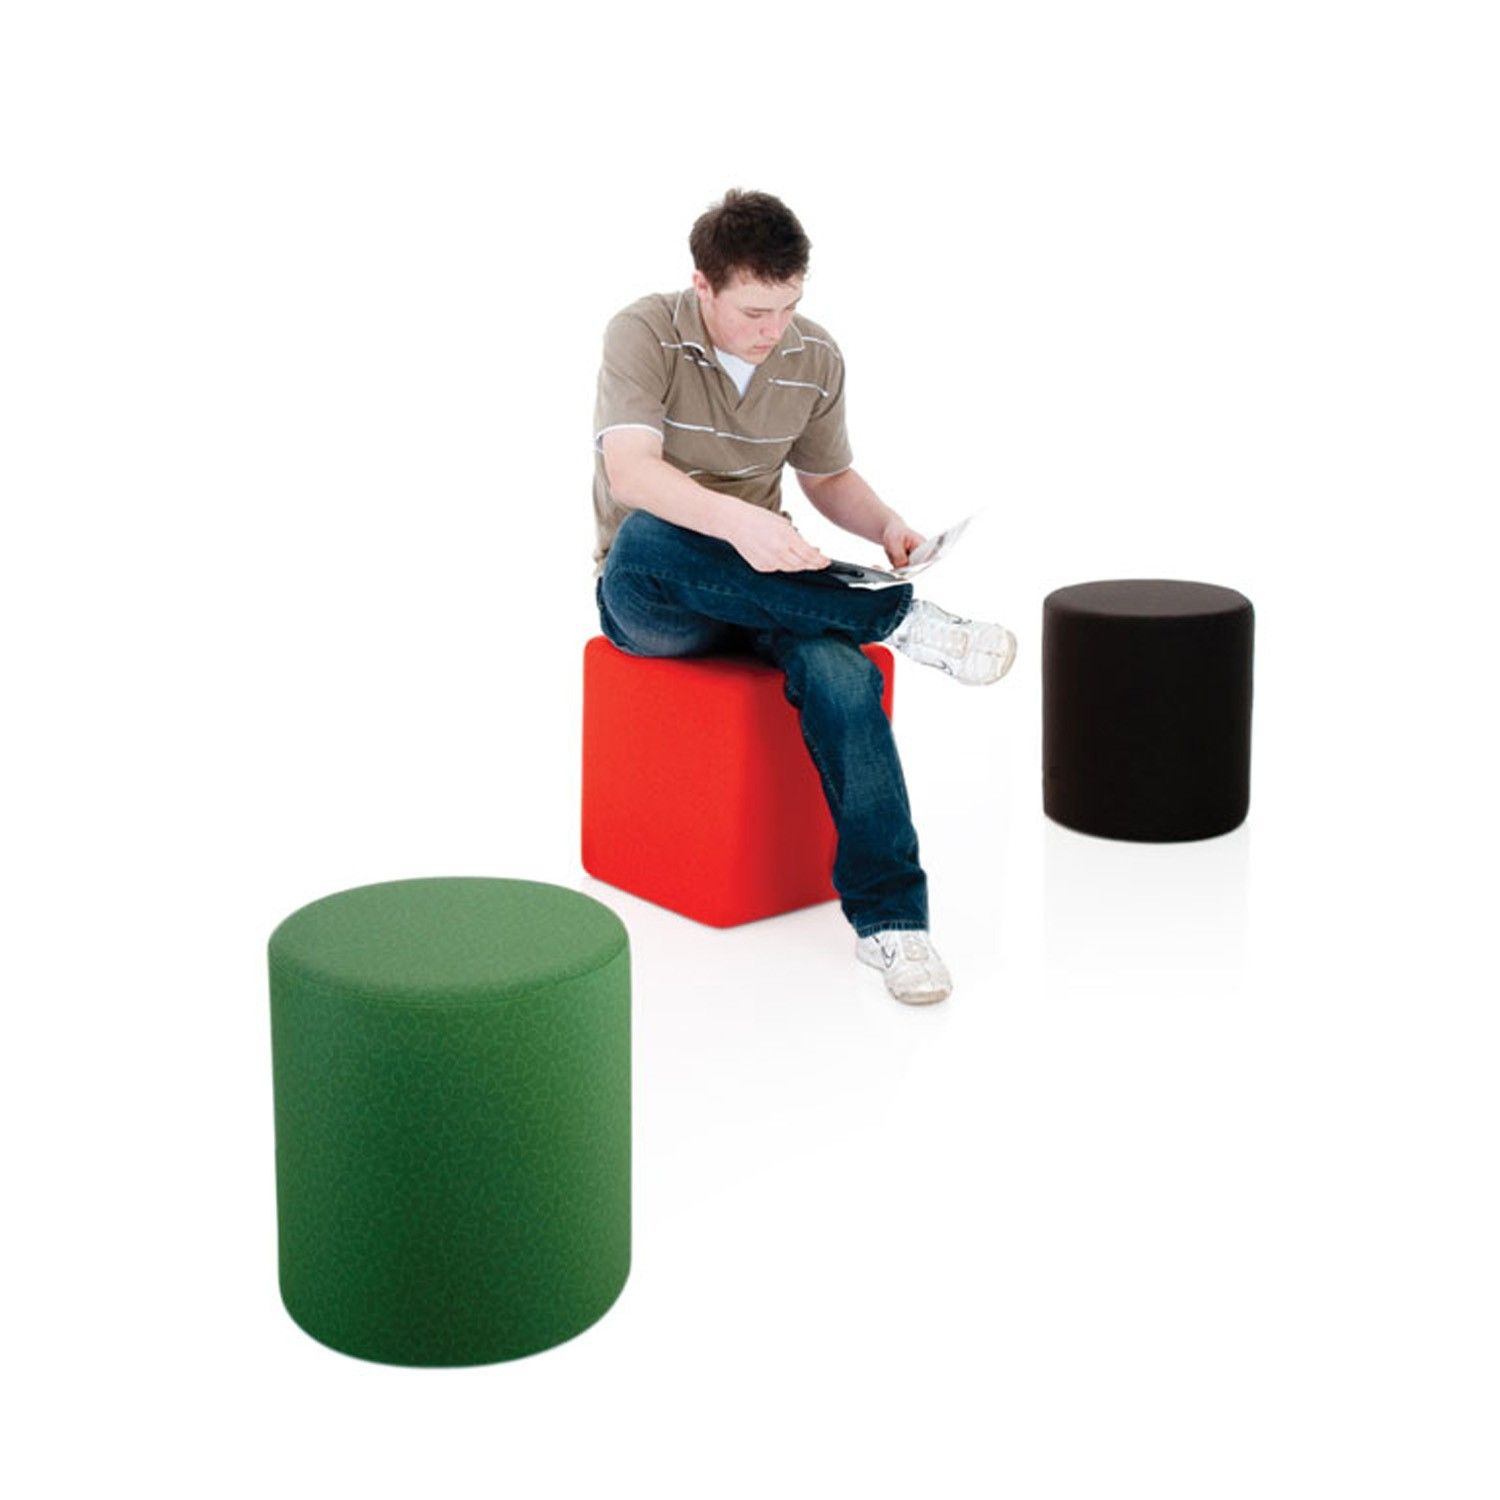 Hm51 Stools And Bench Seating Is A Collection Of Simple